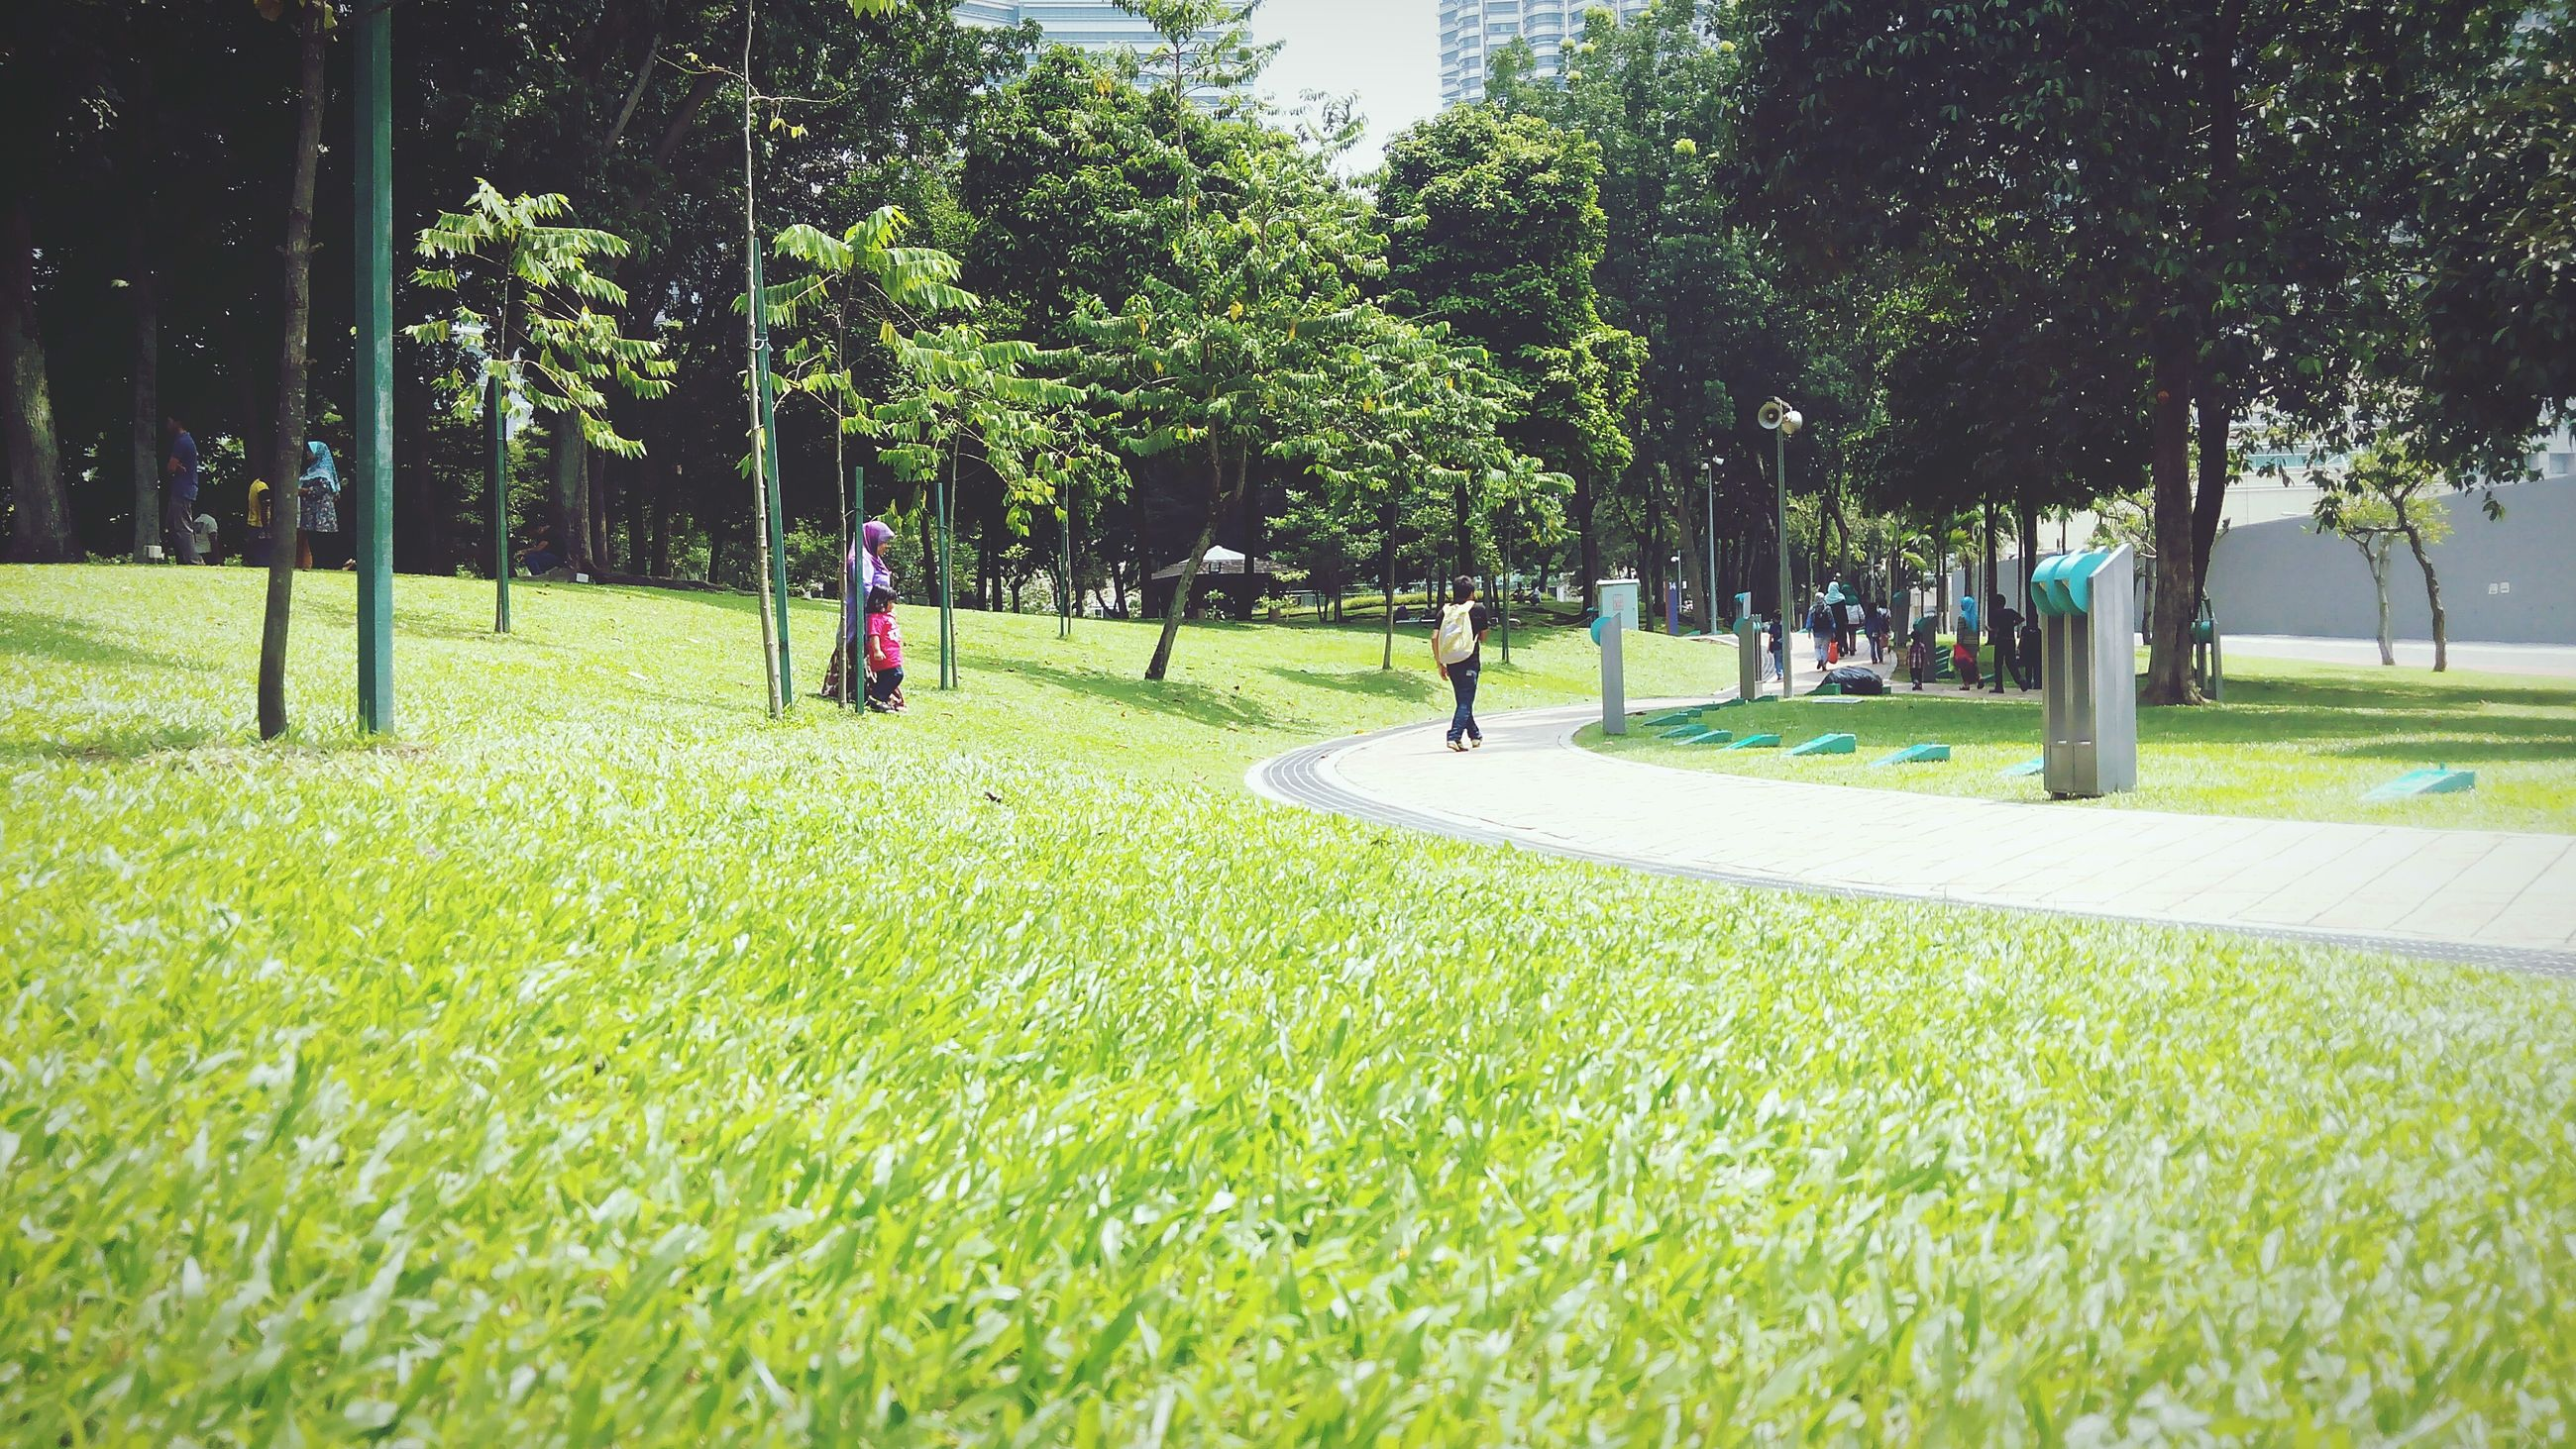 tree, grass, green color, growth, park - man made space, field, nature, tranquility, shadow, sunlight, park, tree trunk, grassy, footpath, beauty in nature, treelined, lawn, day